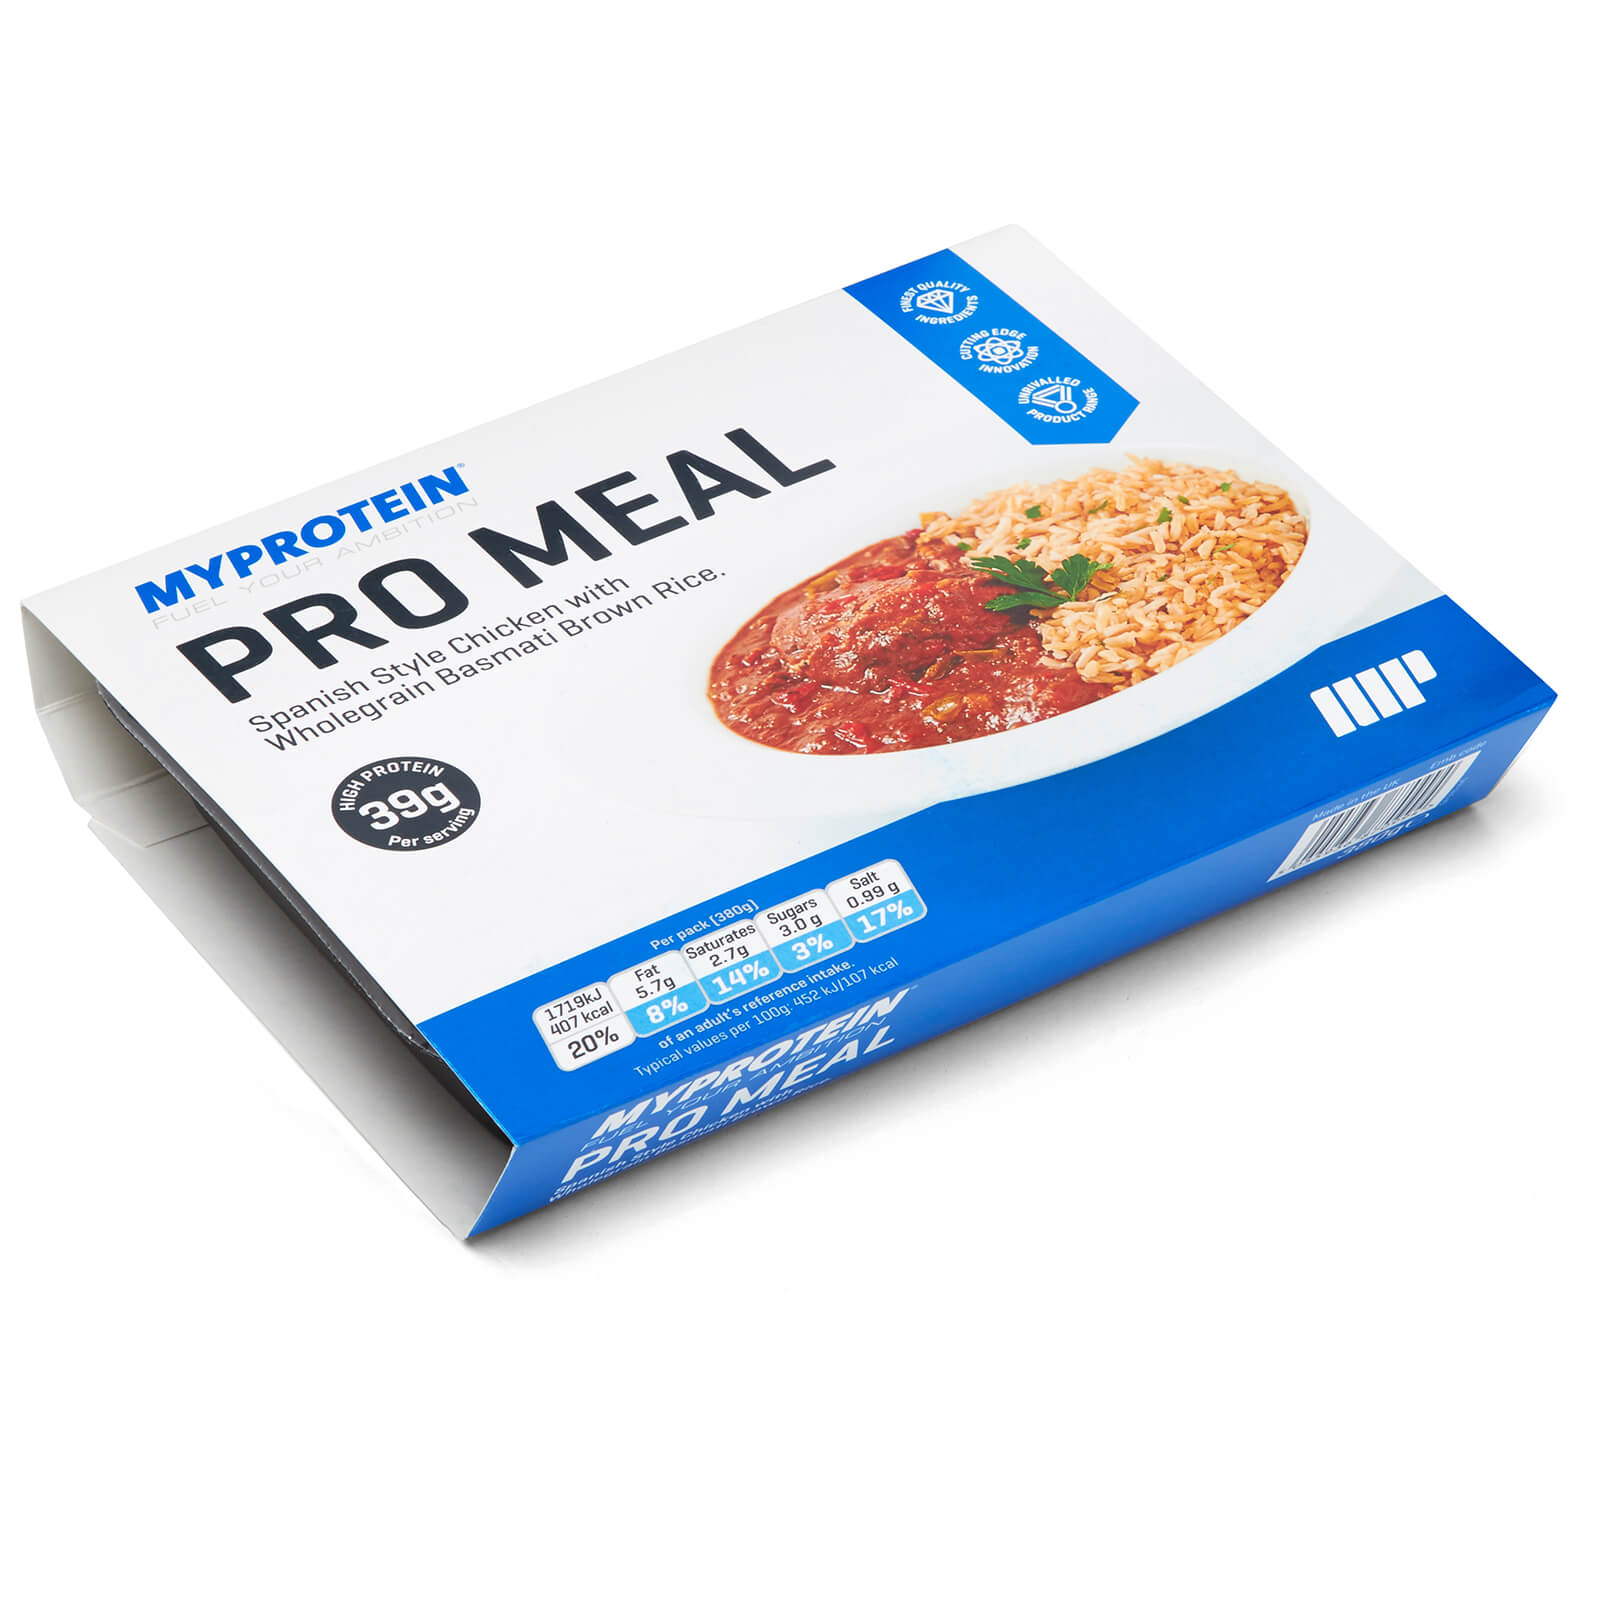 Pro Meals - Spanish Chicken & Brown Rice - 6 x 380g